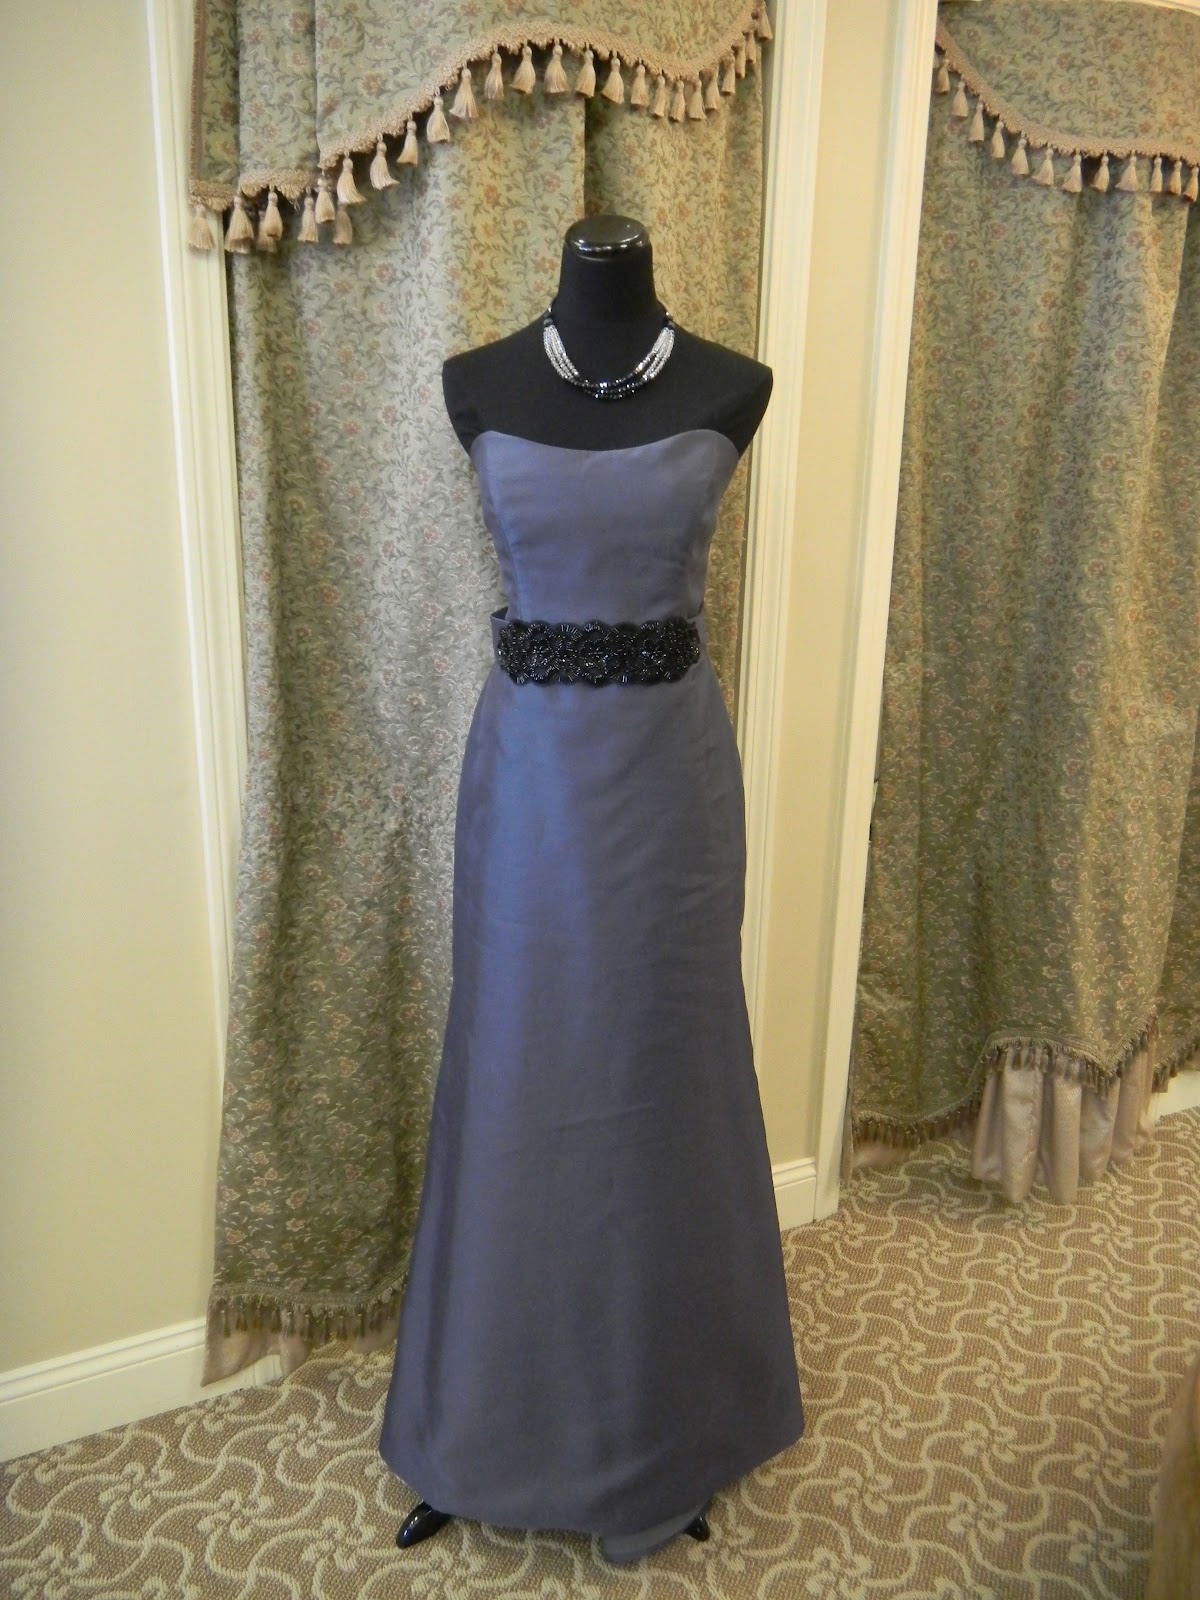 Madeleines daughter blog our best bridesmaid dresses trying to find an elegant bridesmaid dress for a formal wedding isnt easy you need to look for rich fabrics great fit and a little embellishment to take ombrellifo Gallery